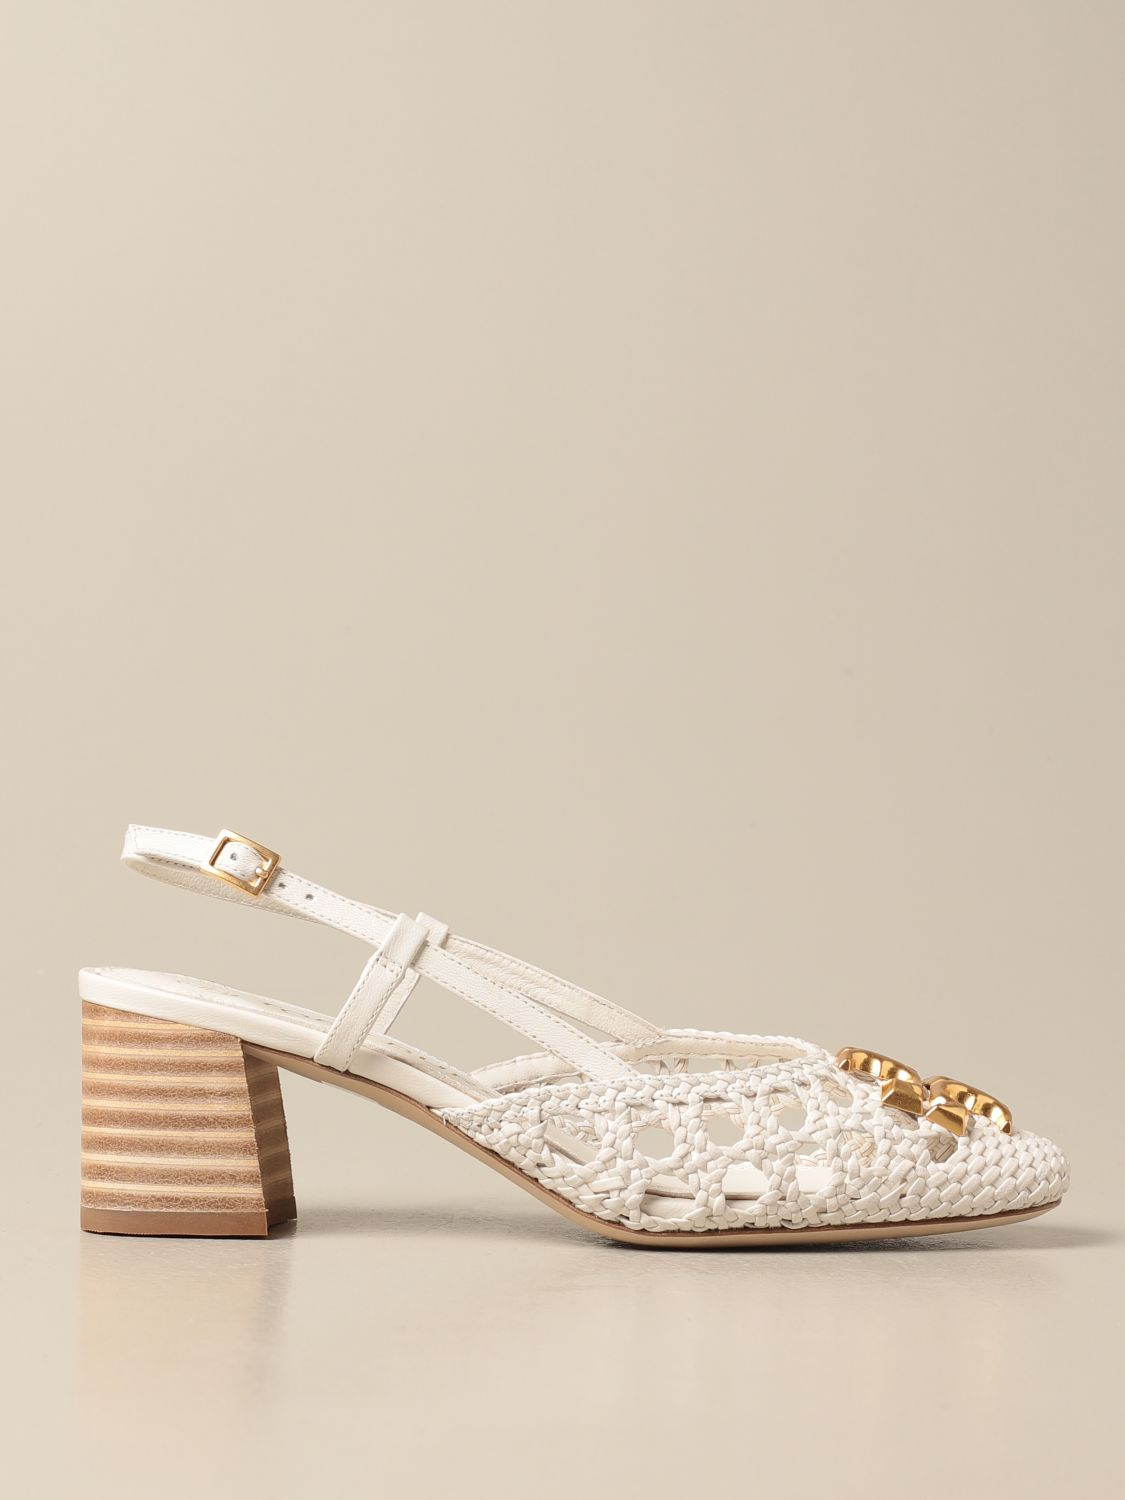 Pumps Tory Burch: Tory Burch slingback in woven leather with logo ivory 1